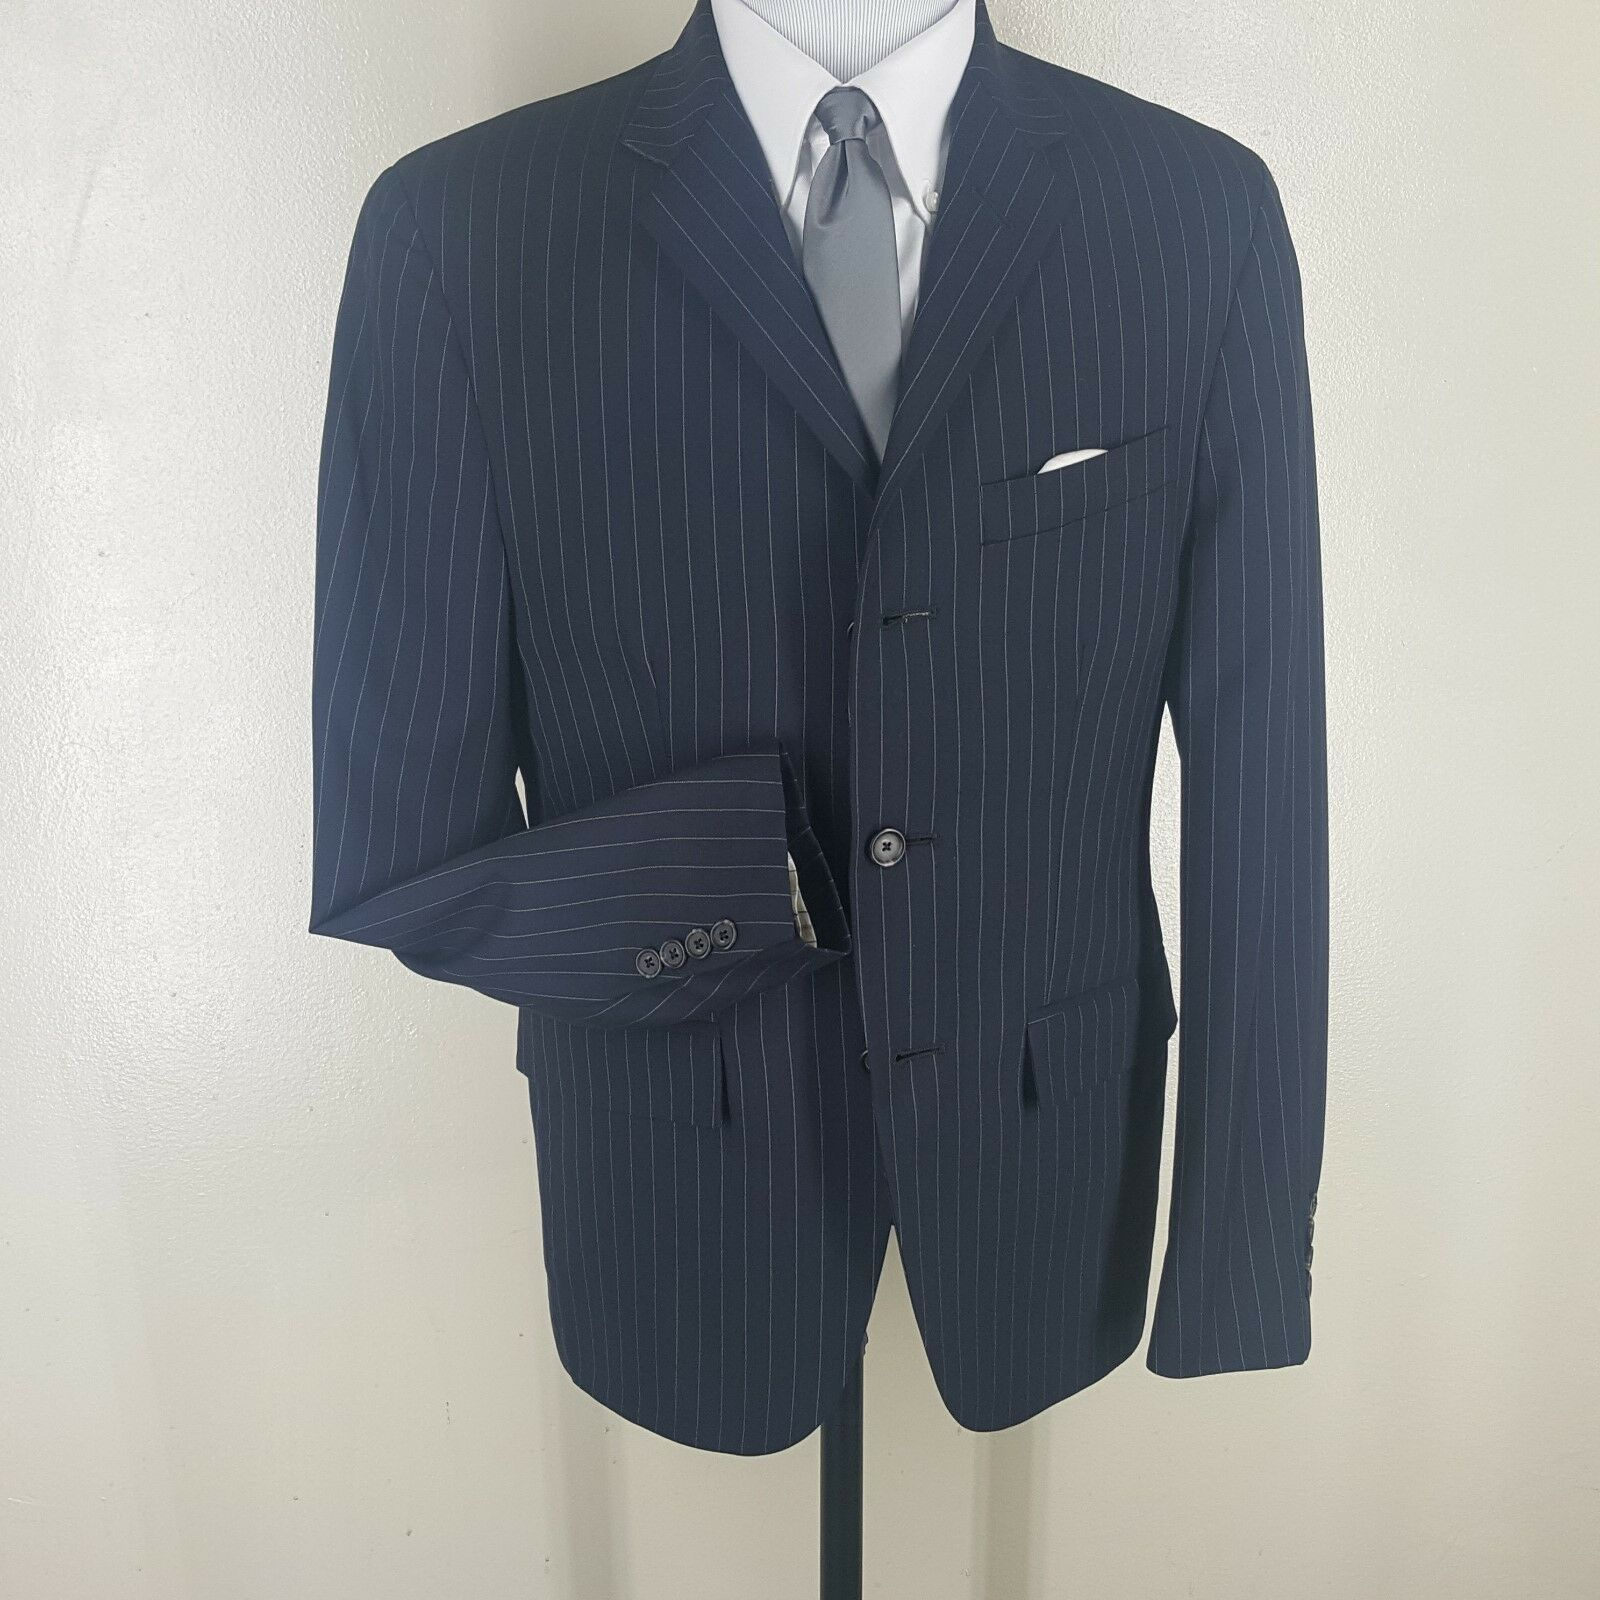 RUGBY RALPH LAUREN USA bluee Pinstripe Wool Suit 3 Btn  40 Sh   Fit  38-40 Short